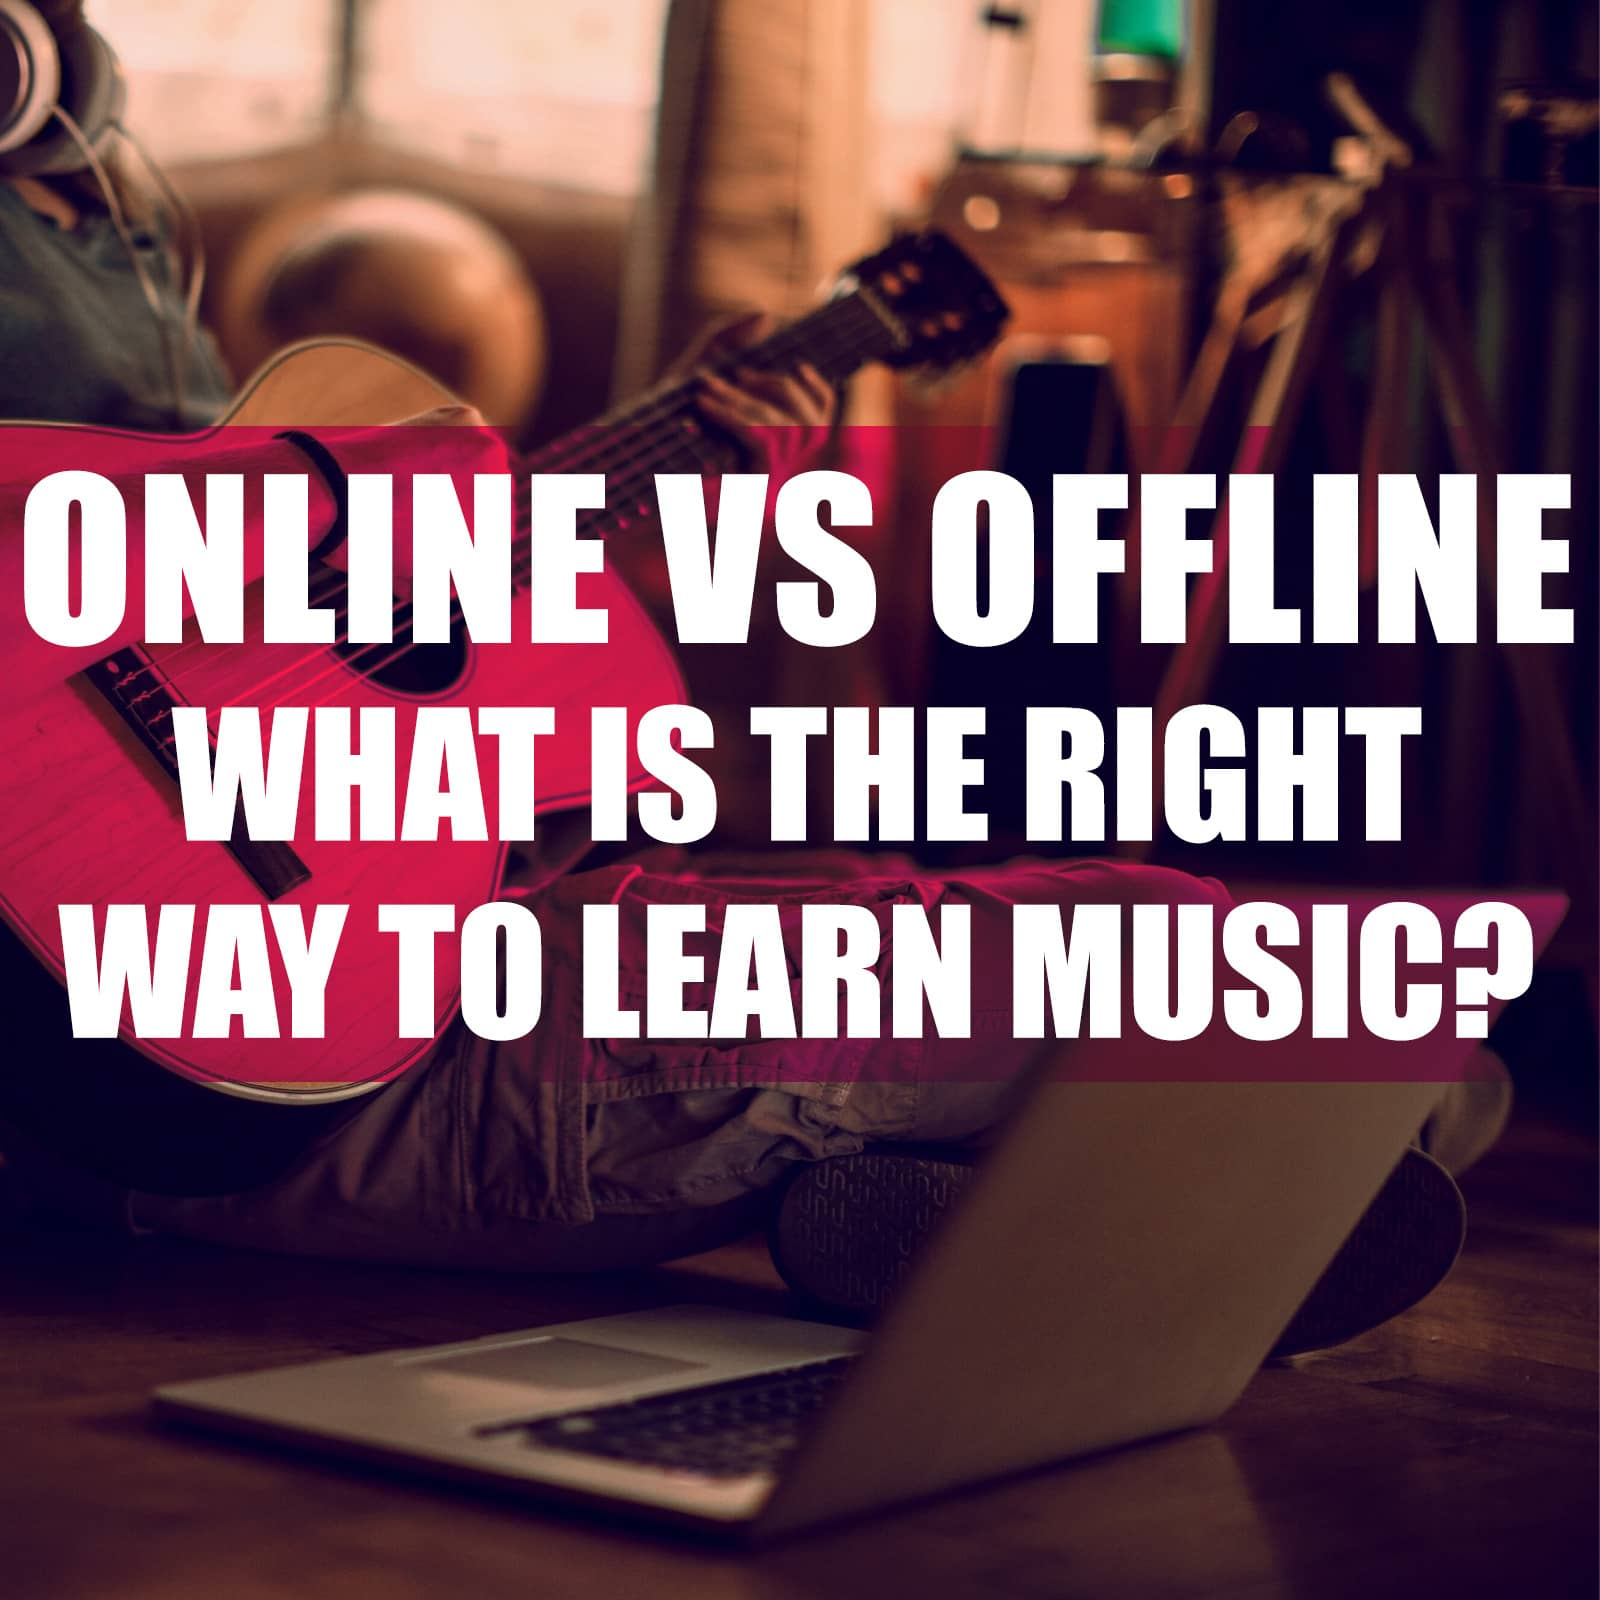 Online vs. Offline - What is the right way to learn music?